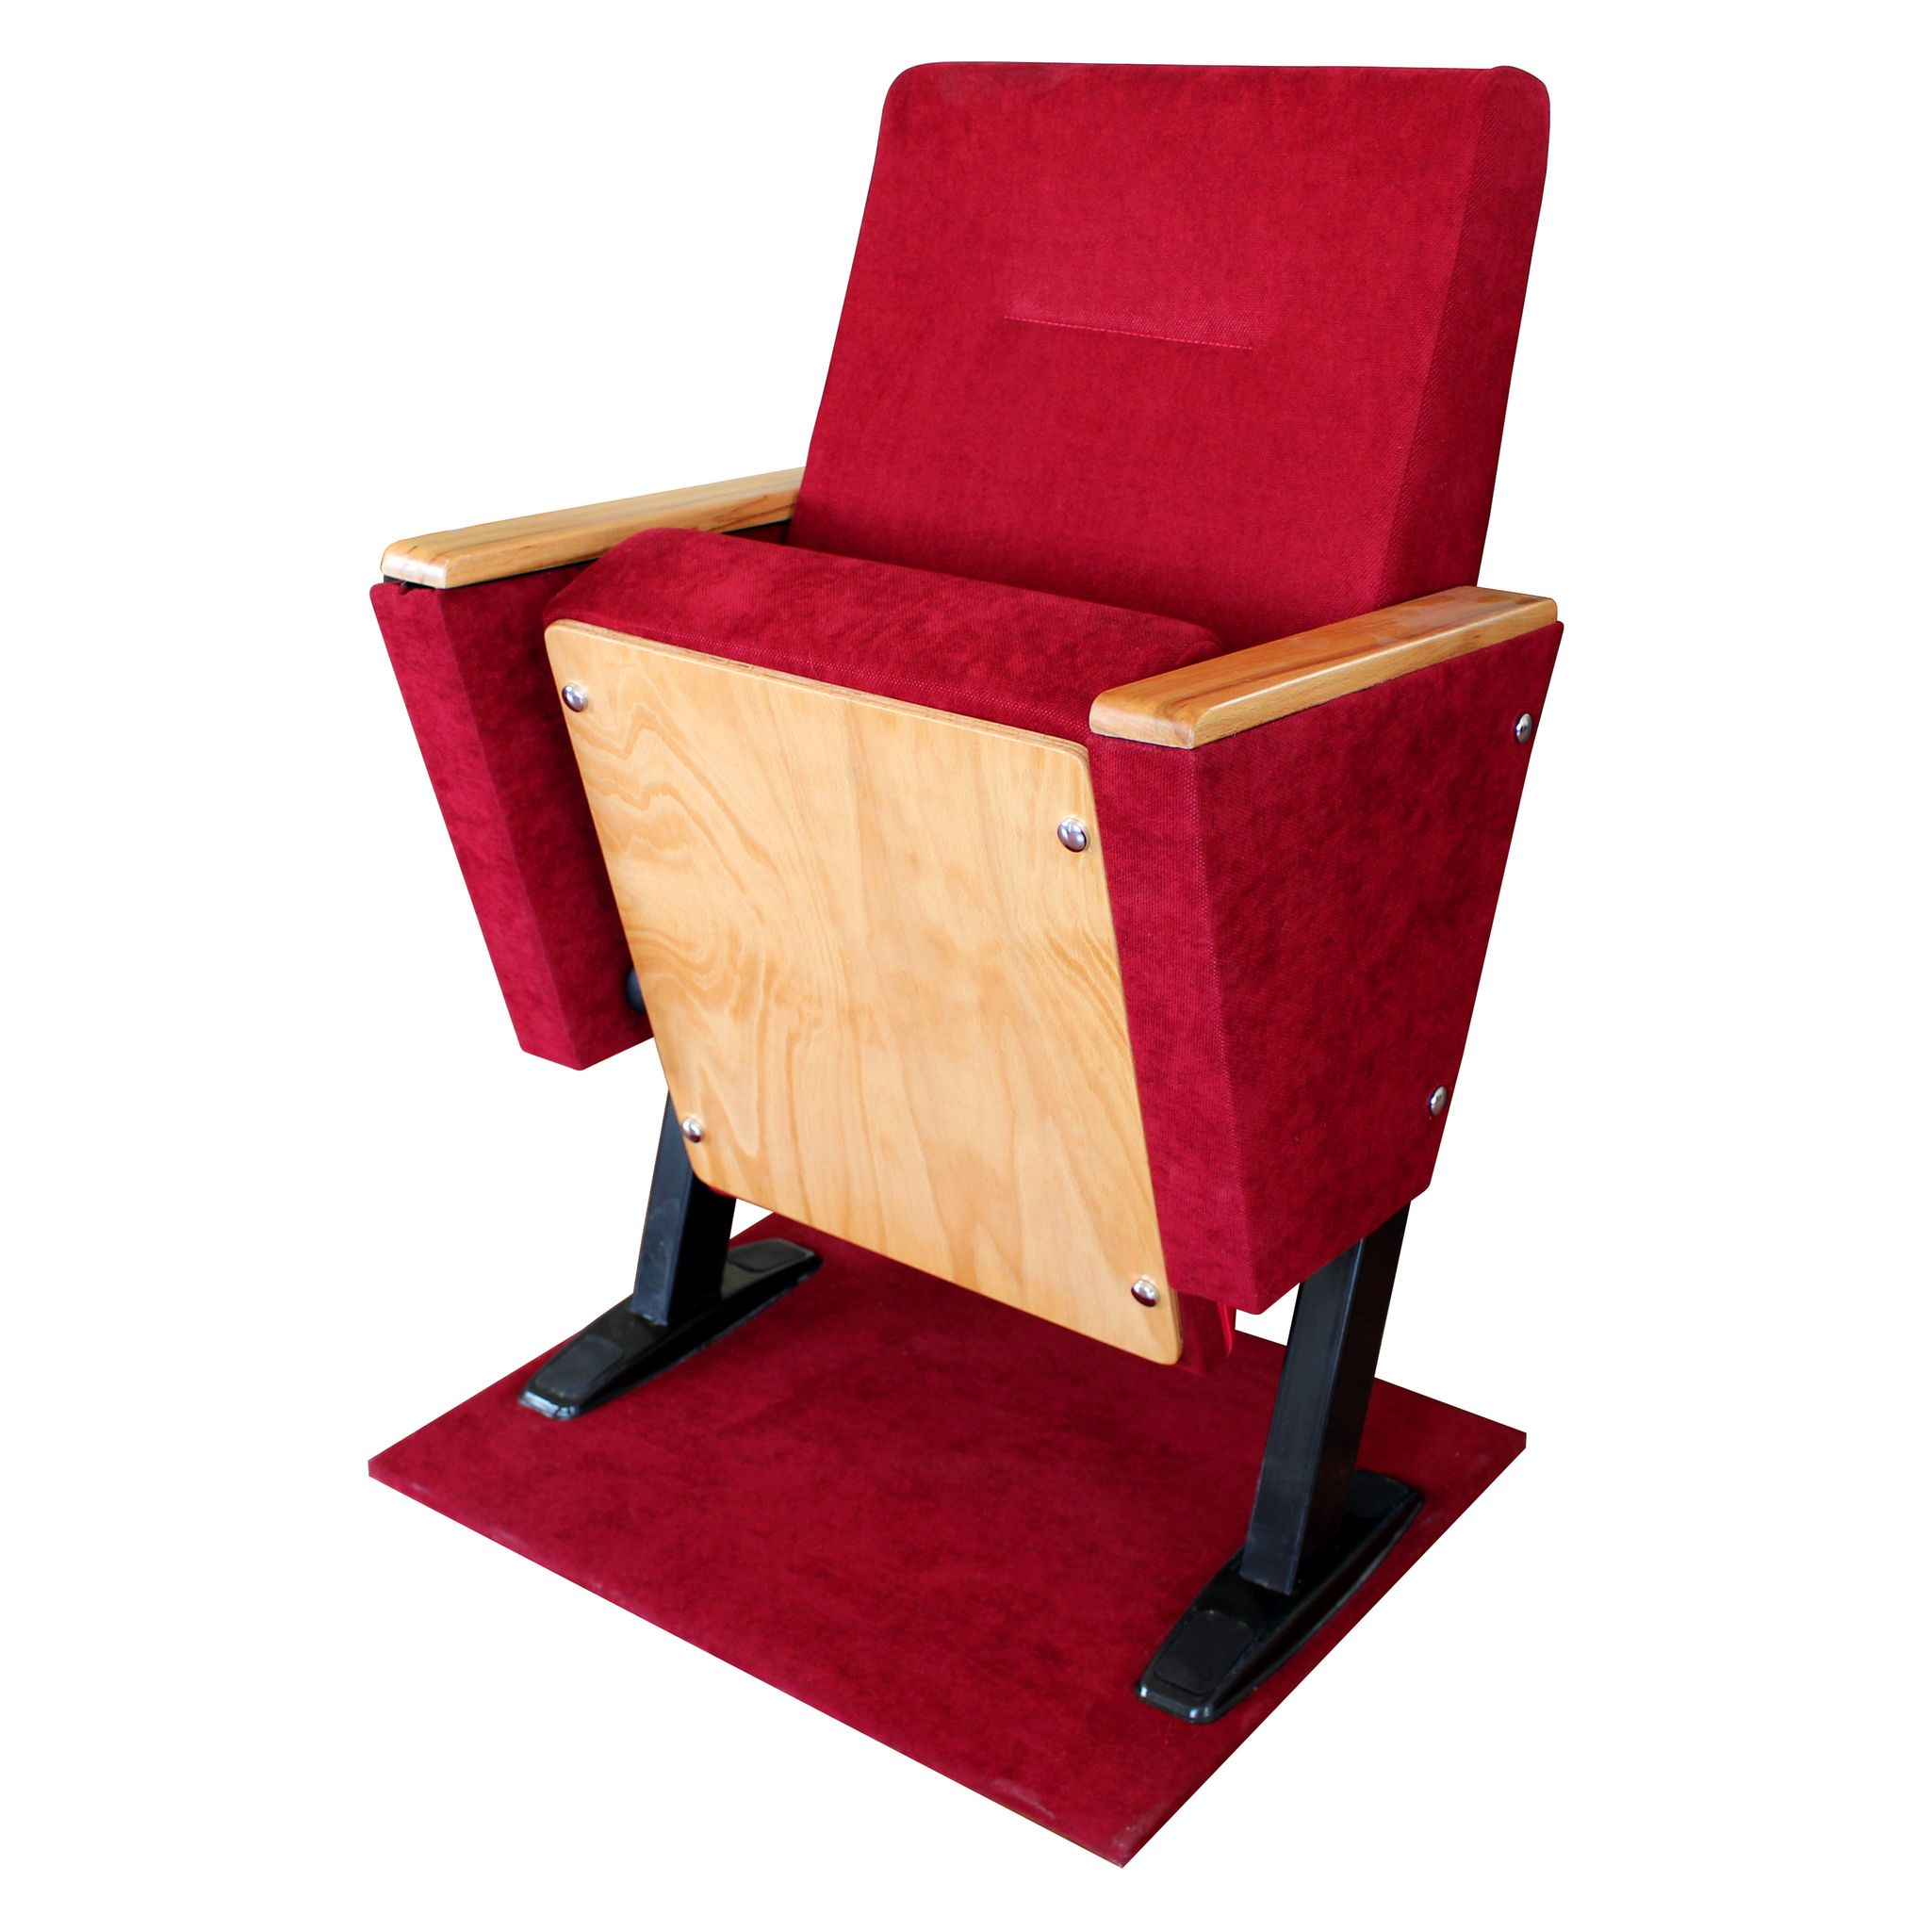 Akon Series – Y60-1 Model – Auditorium, Theater Chair – Dimensions, Price